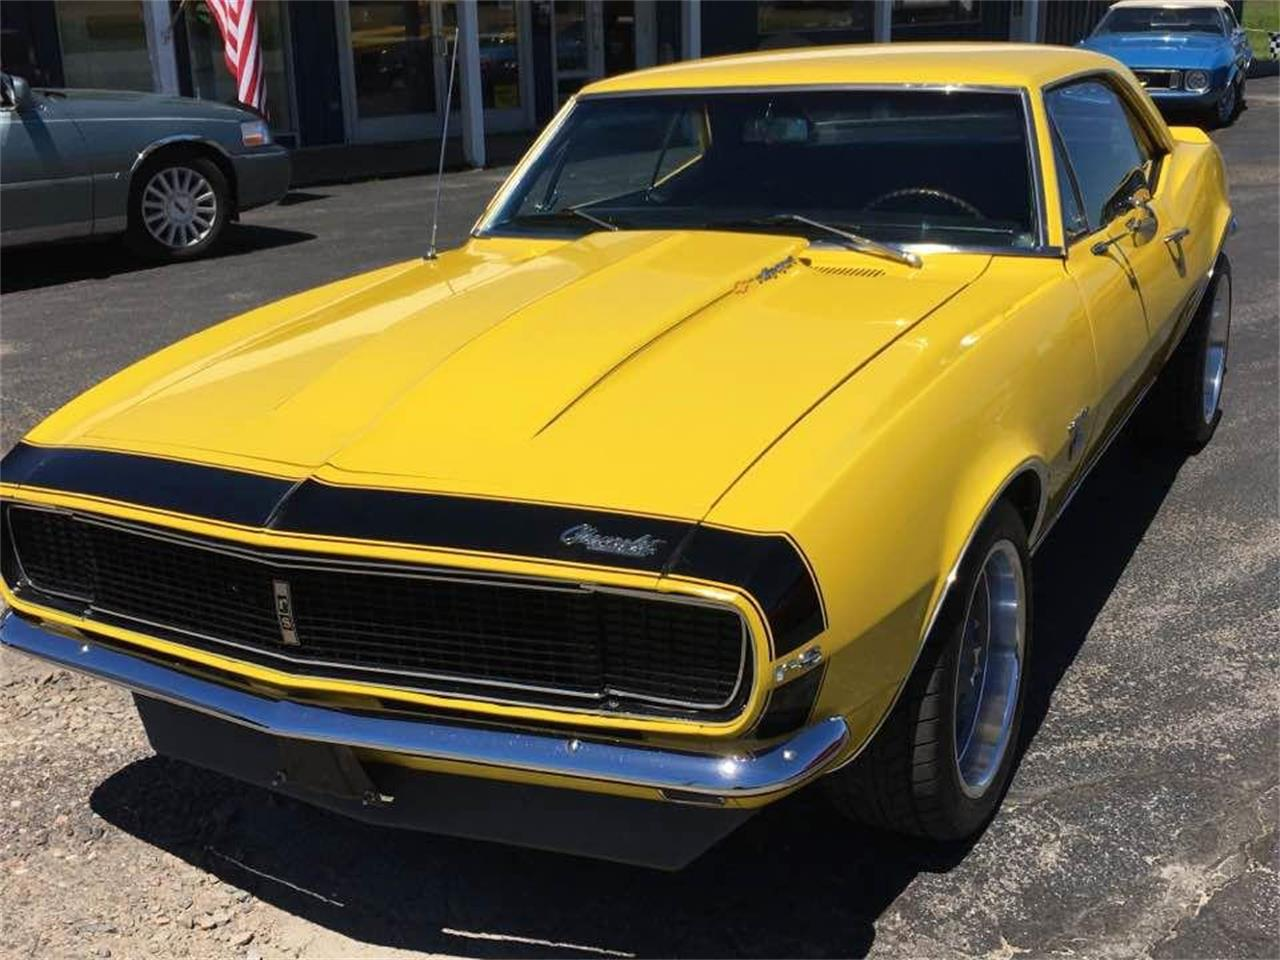 Large Picture of 1967 Camaro located in New York - $34,500.00 - LAZ6